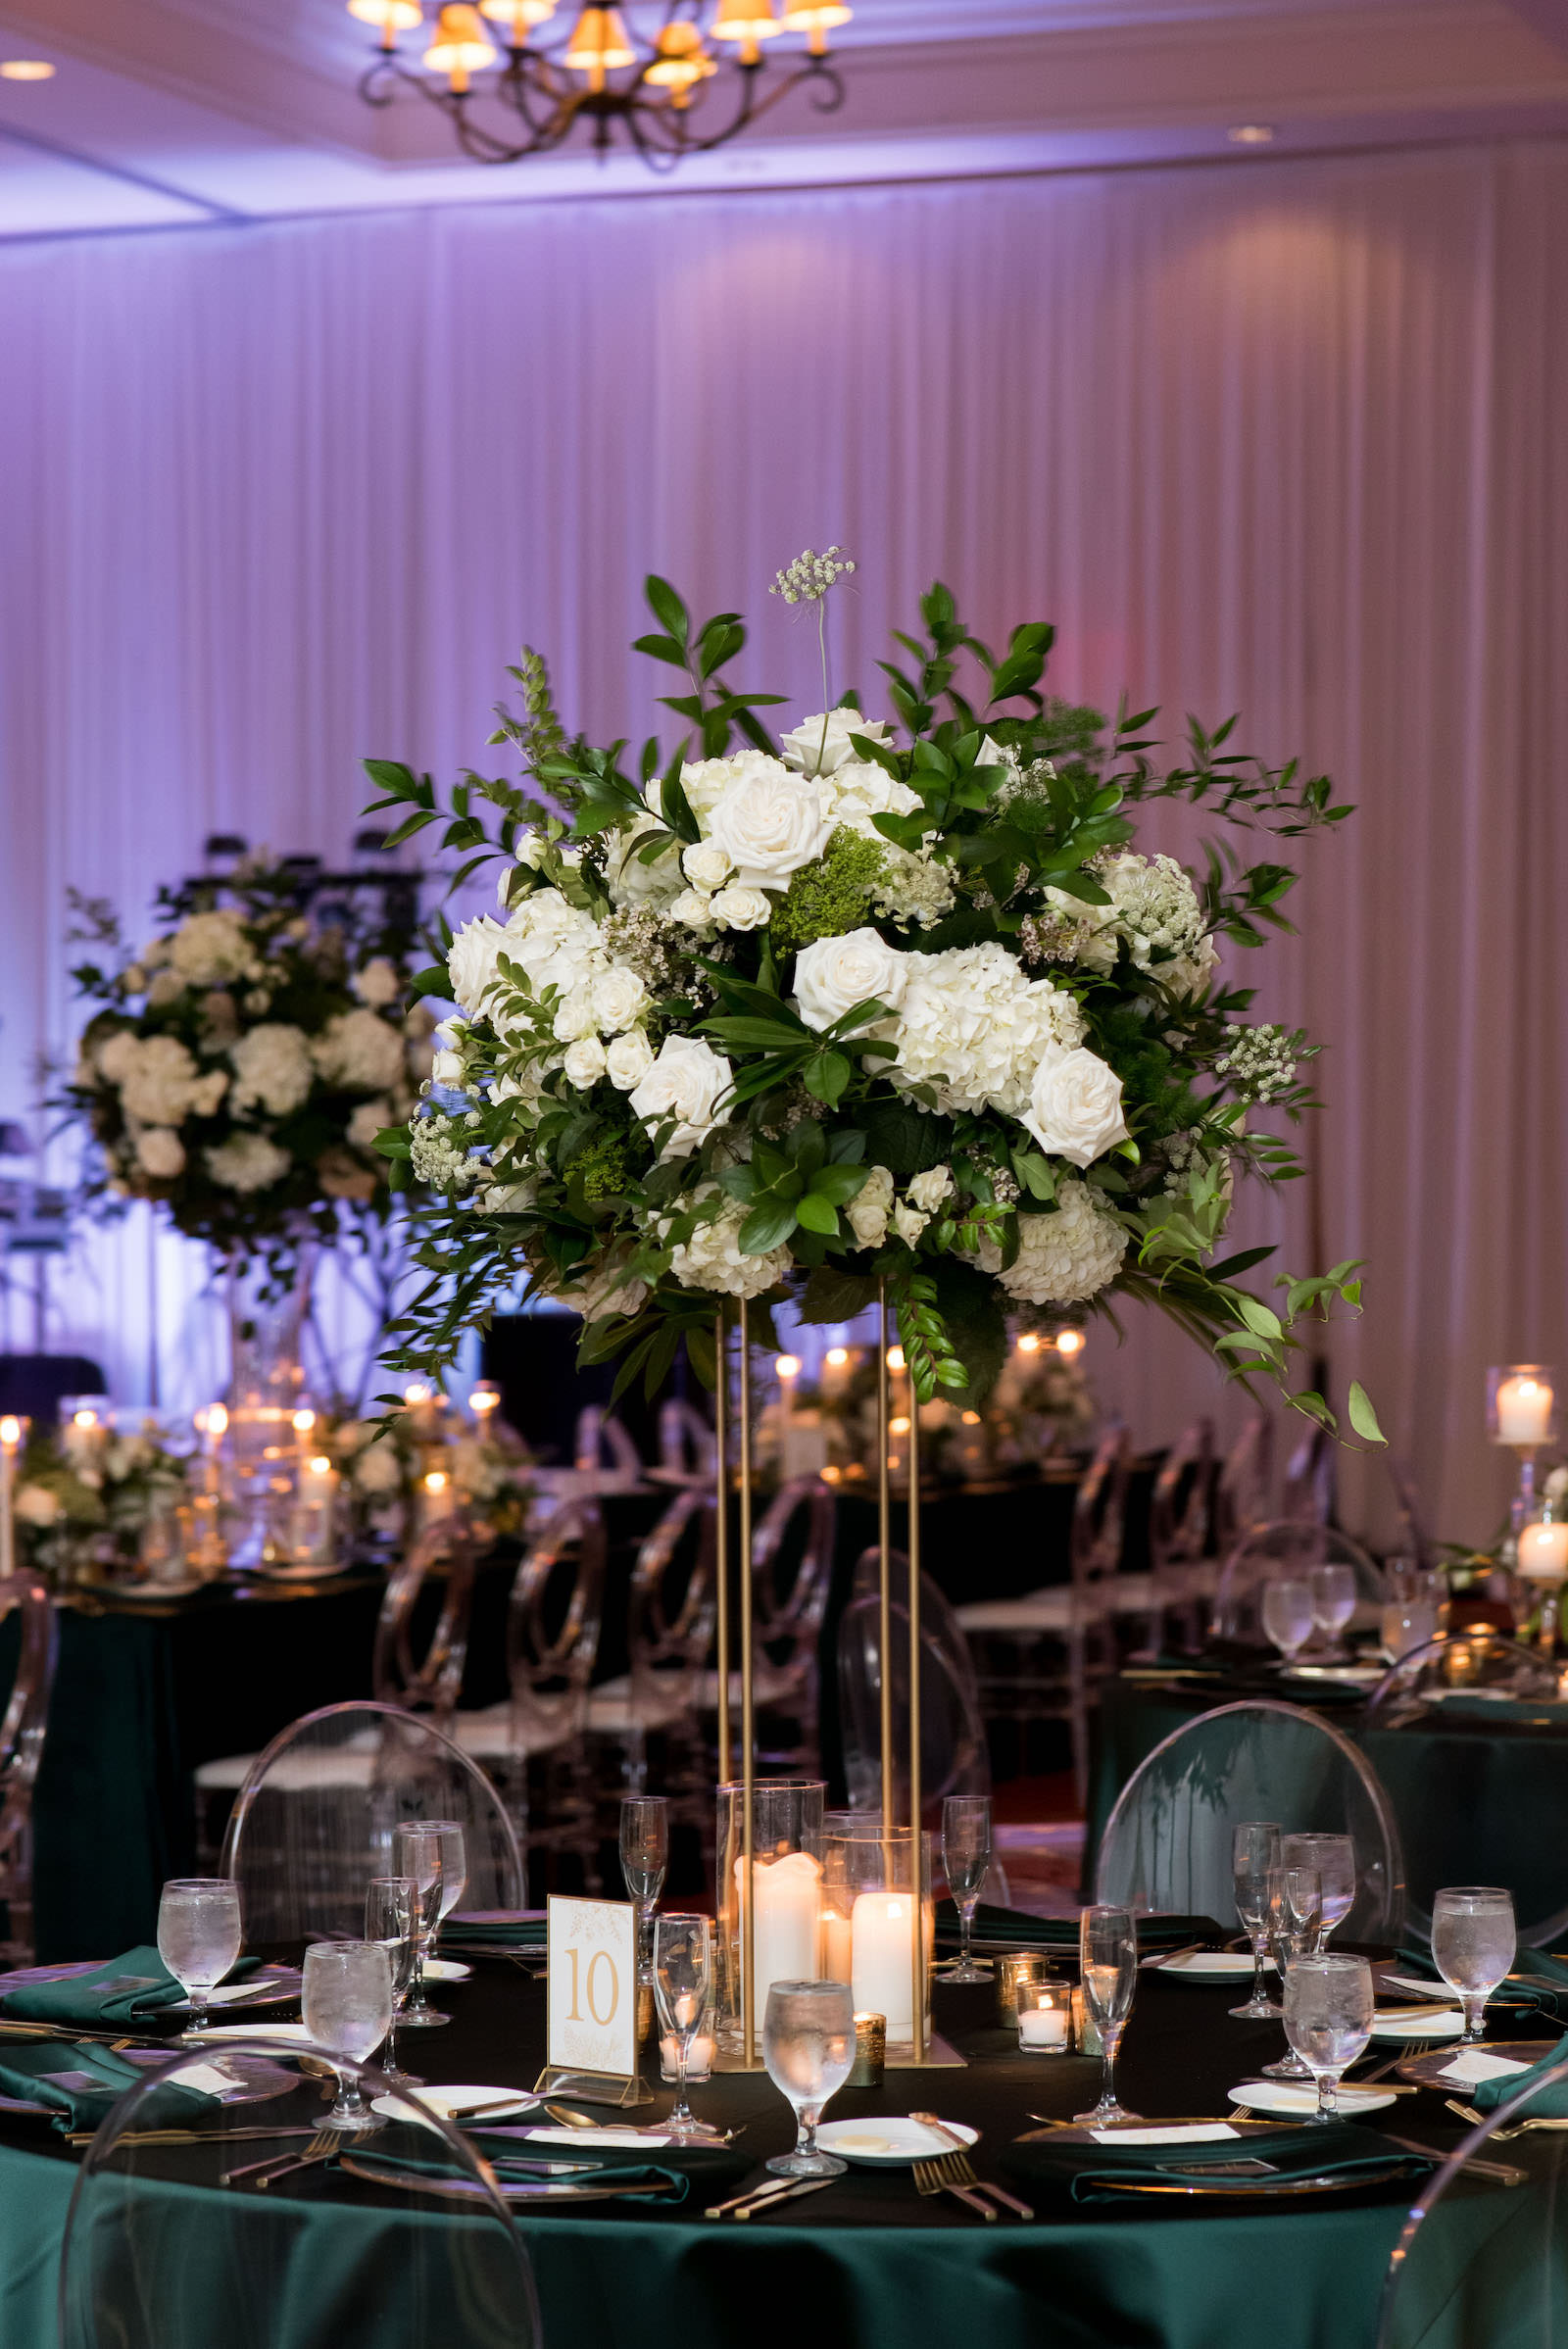 Elegant Wedding Reception Decor, Emerald Green Linens, Tall Gold Stand with White Roses, Hydrangeas and Greenery Floral Centerpiece | Tampa Bay Wedding Planner Parties A'la Carte | St. Wedding Venue The Vinoy | Wedding Rentals A Chair Affair